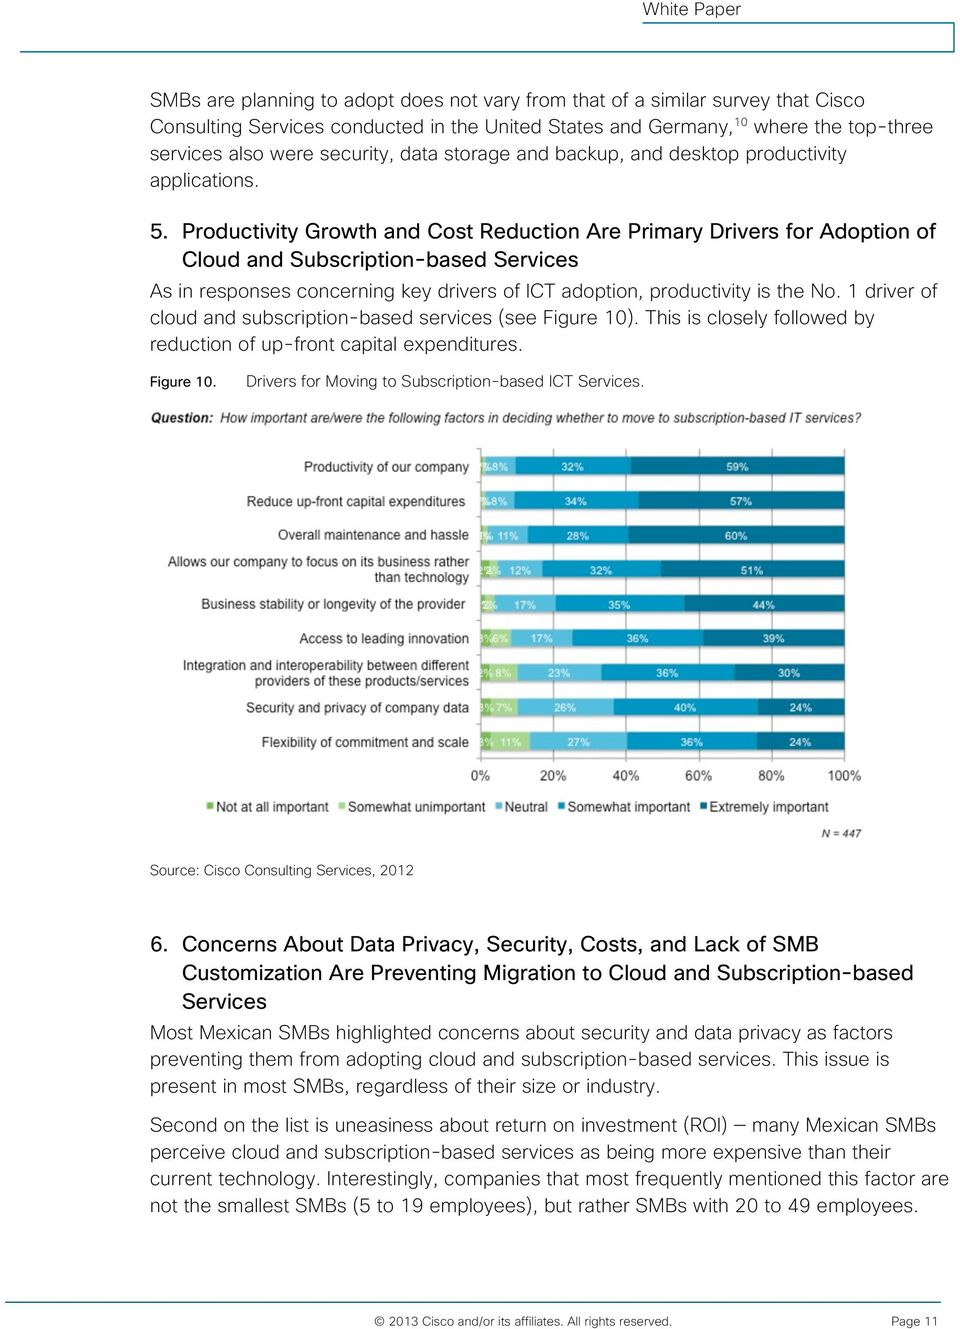 Productivity Growth and Cost Reduction Are Primary Drivers for Adoption of Cloud and Subscription-based Services As in responses concerning key drivers of ICT adoption, productivity is the No.